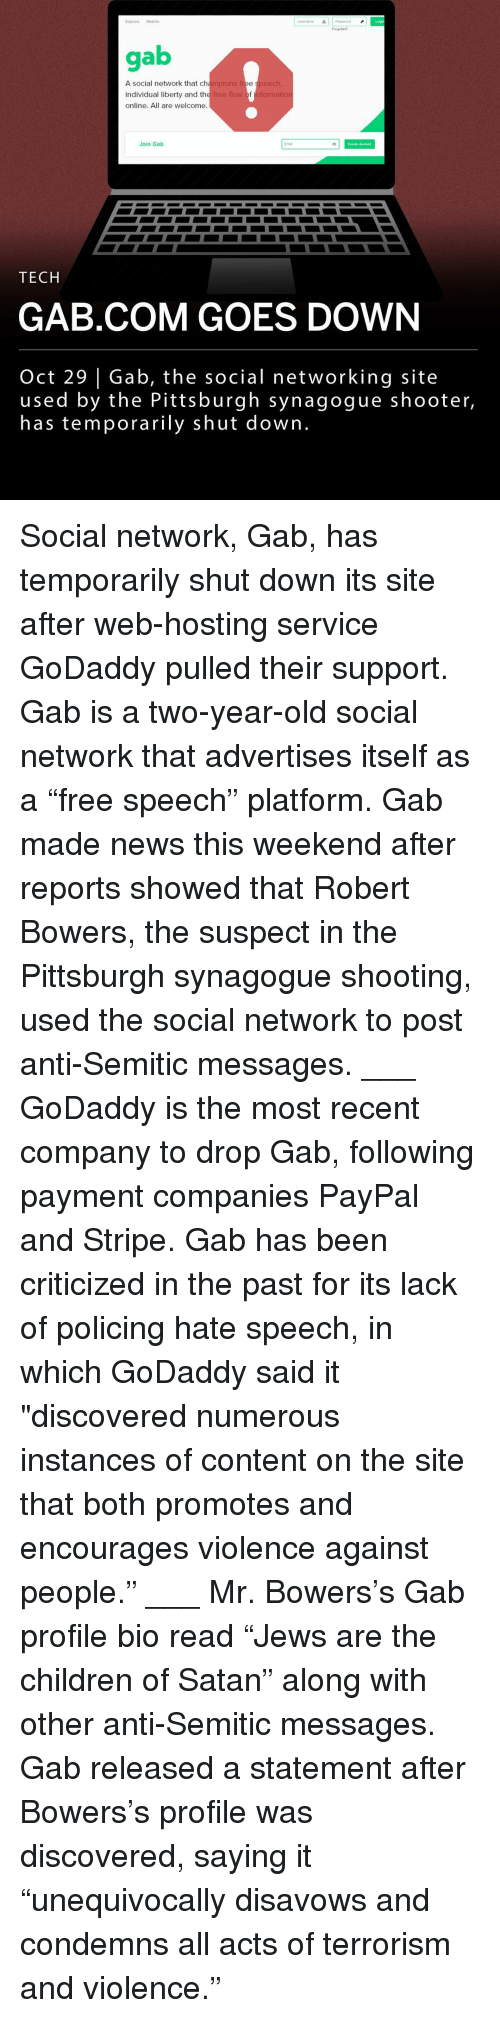 Gab social network temporarily shuts down after GoDaddy pulls support pics